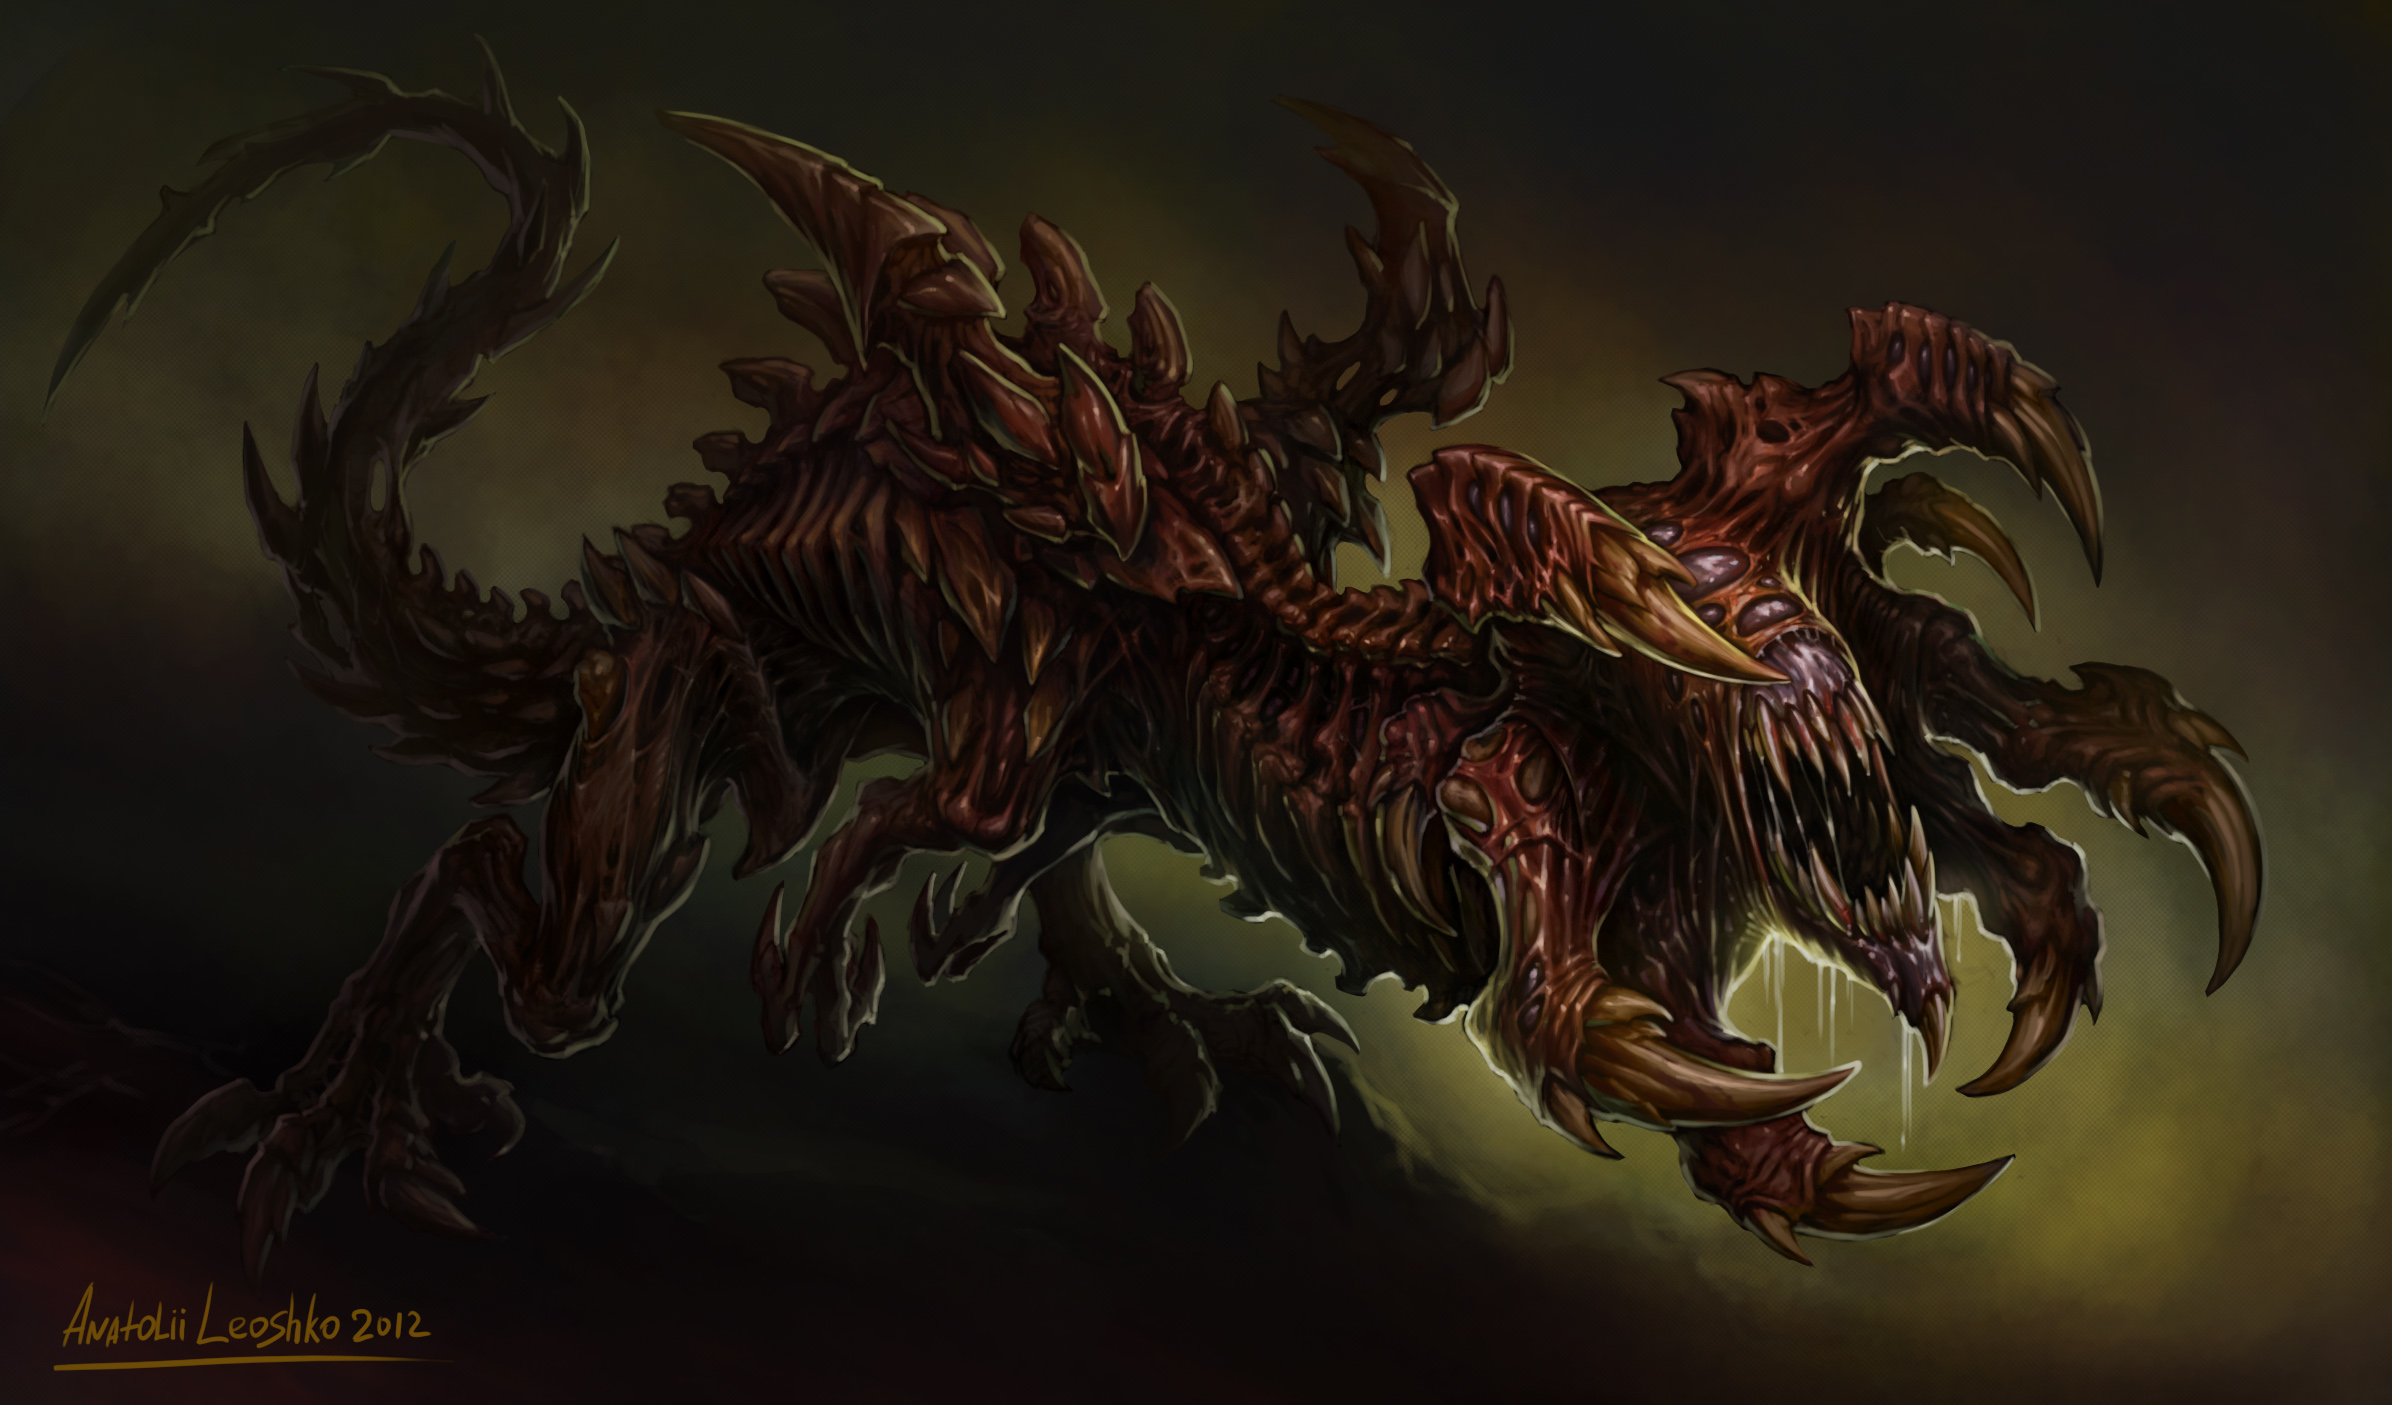 Distorted Dragon by KhezuG